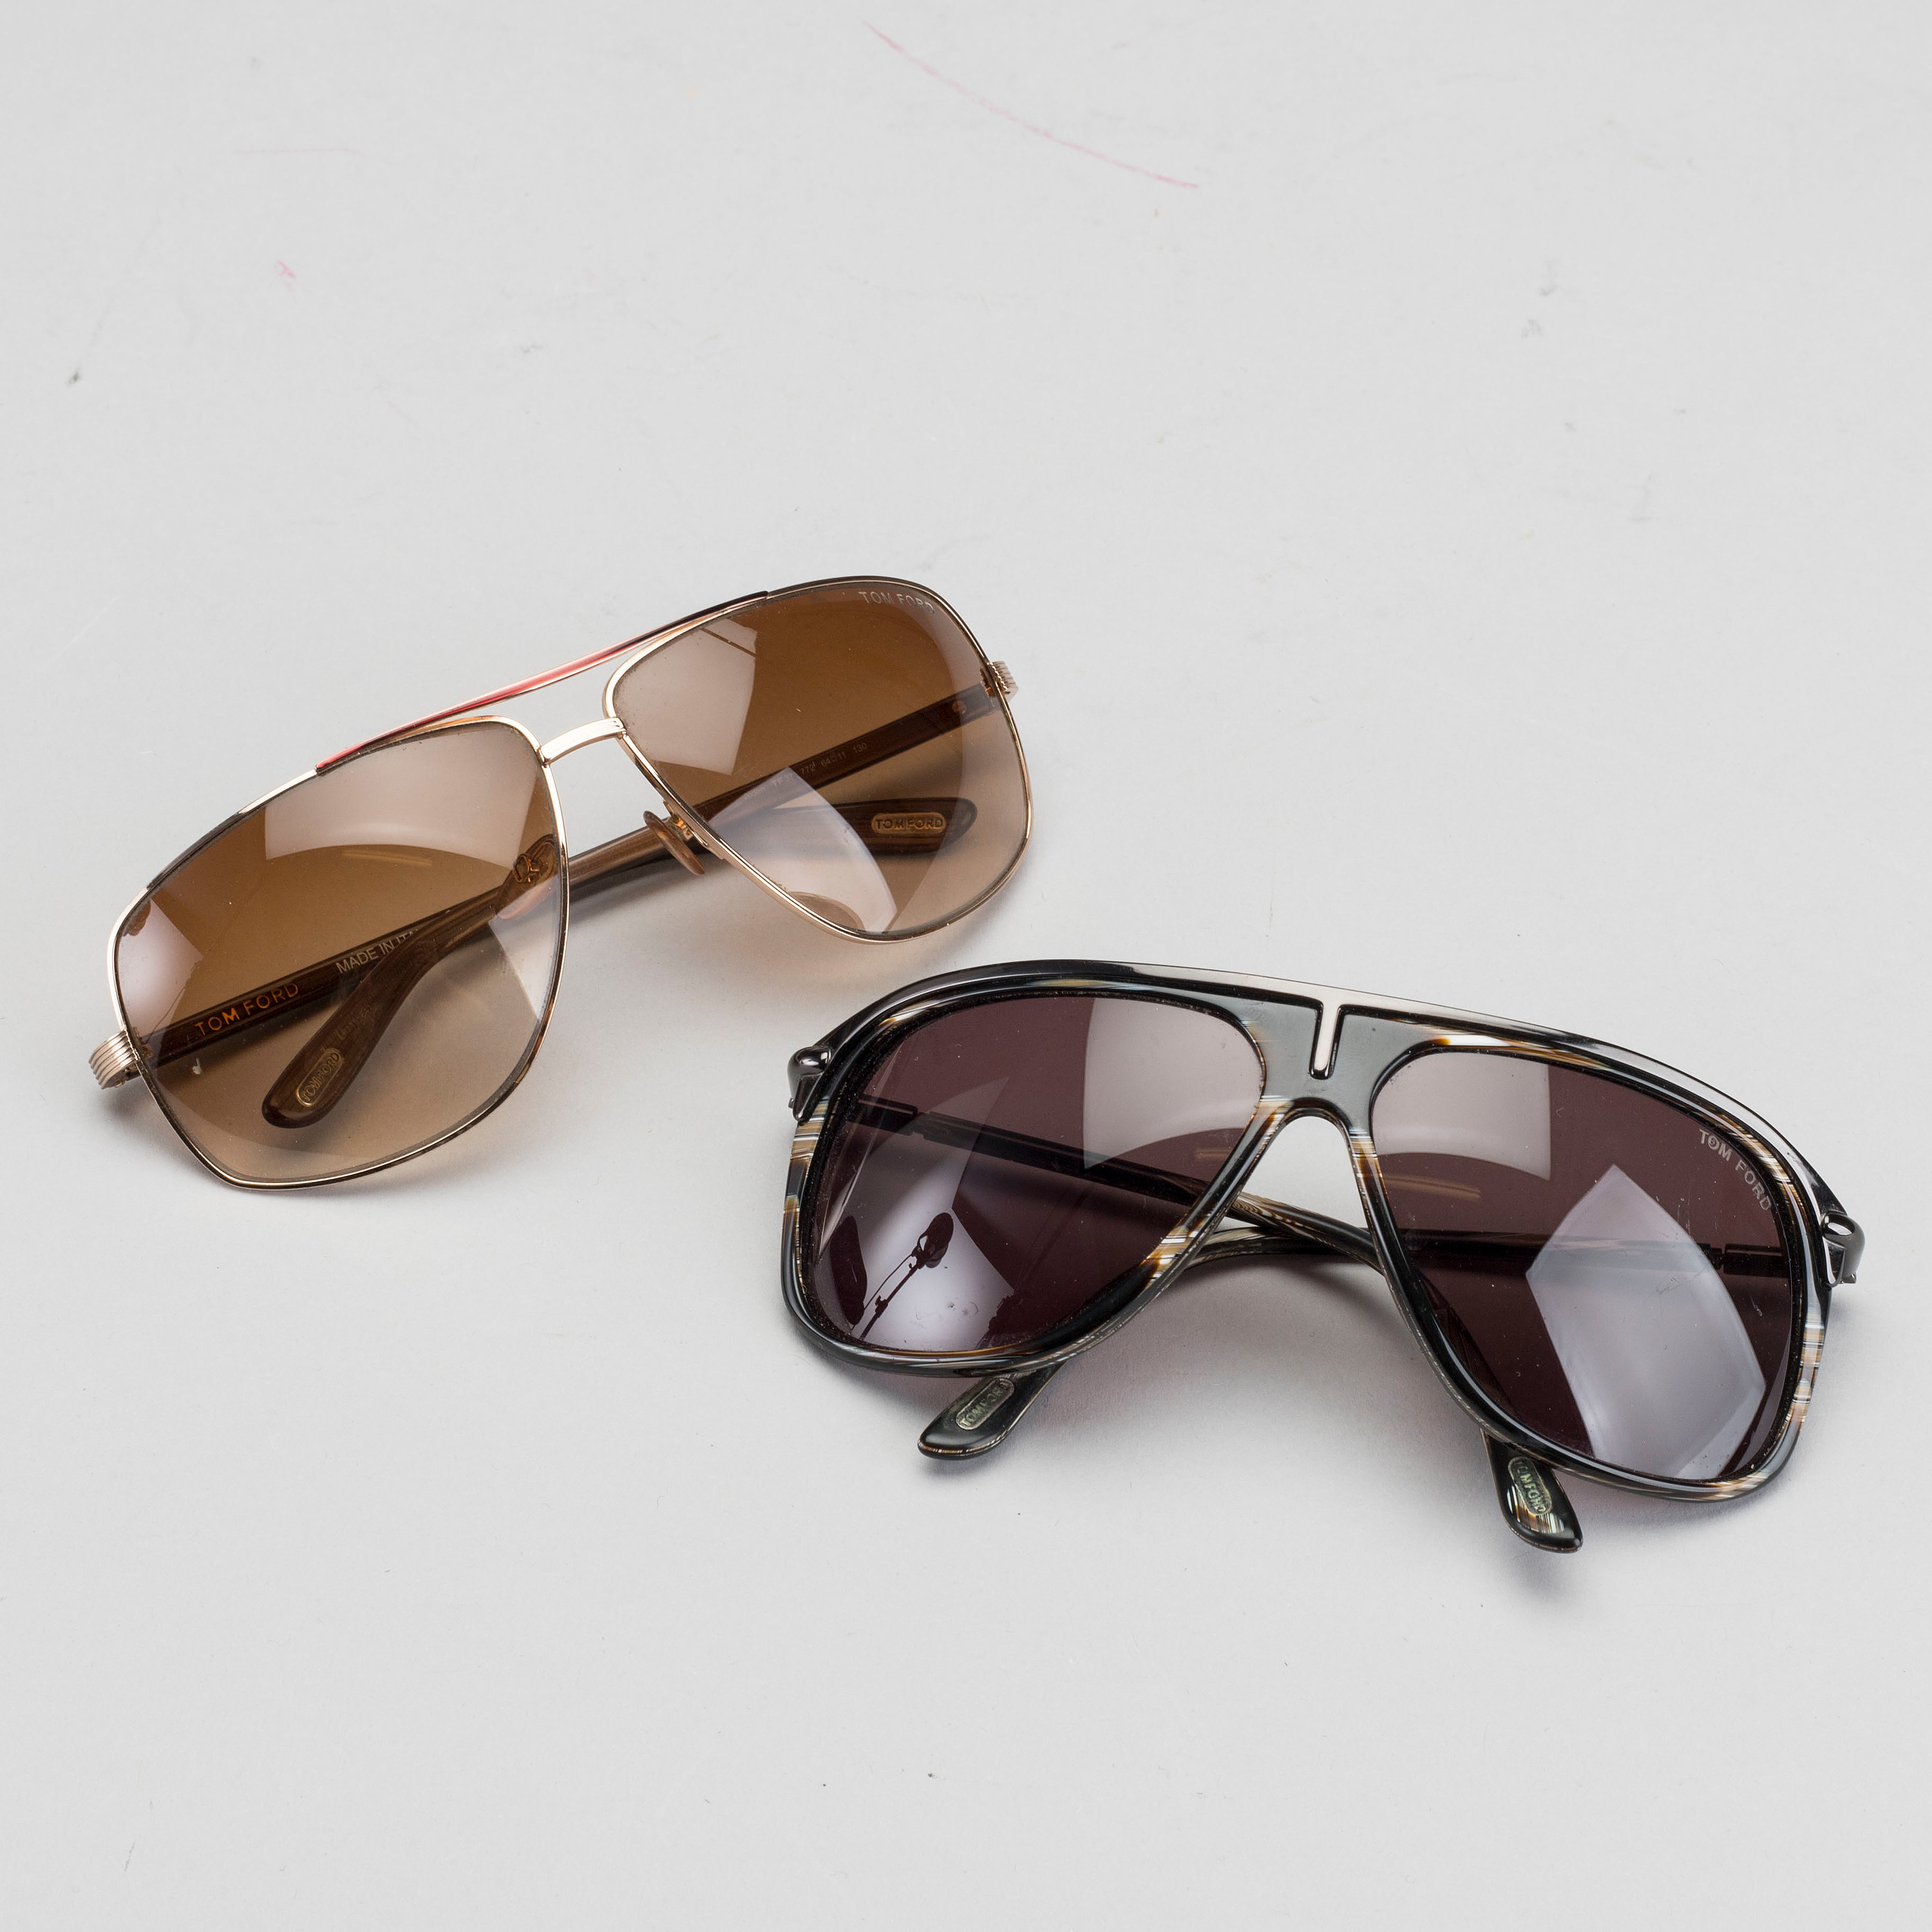 521bf62a64 Two pair of Tom Ford Sunglasses. - Bukowskis